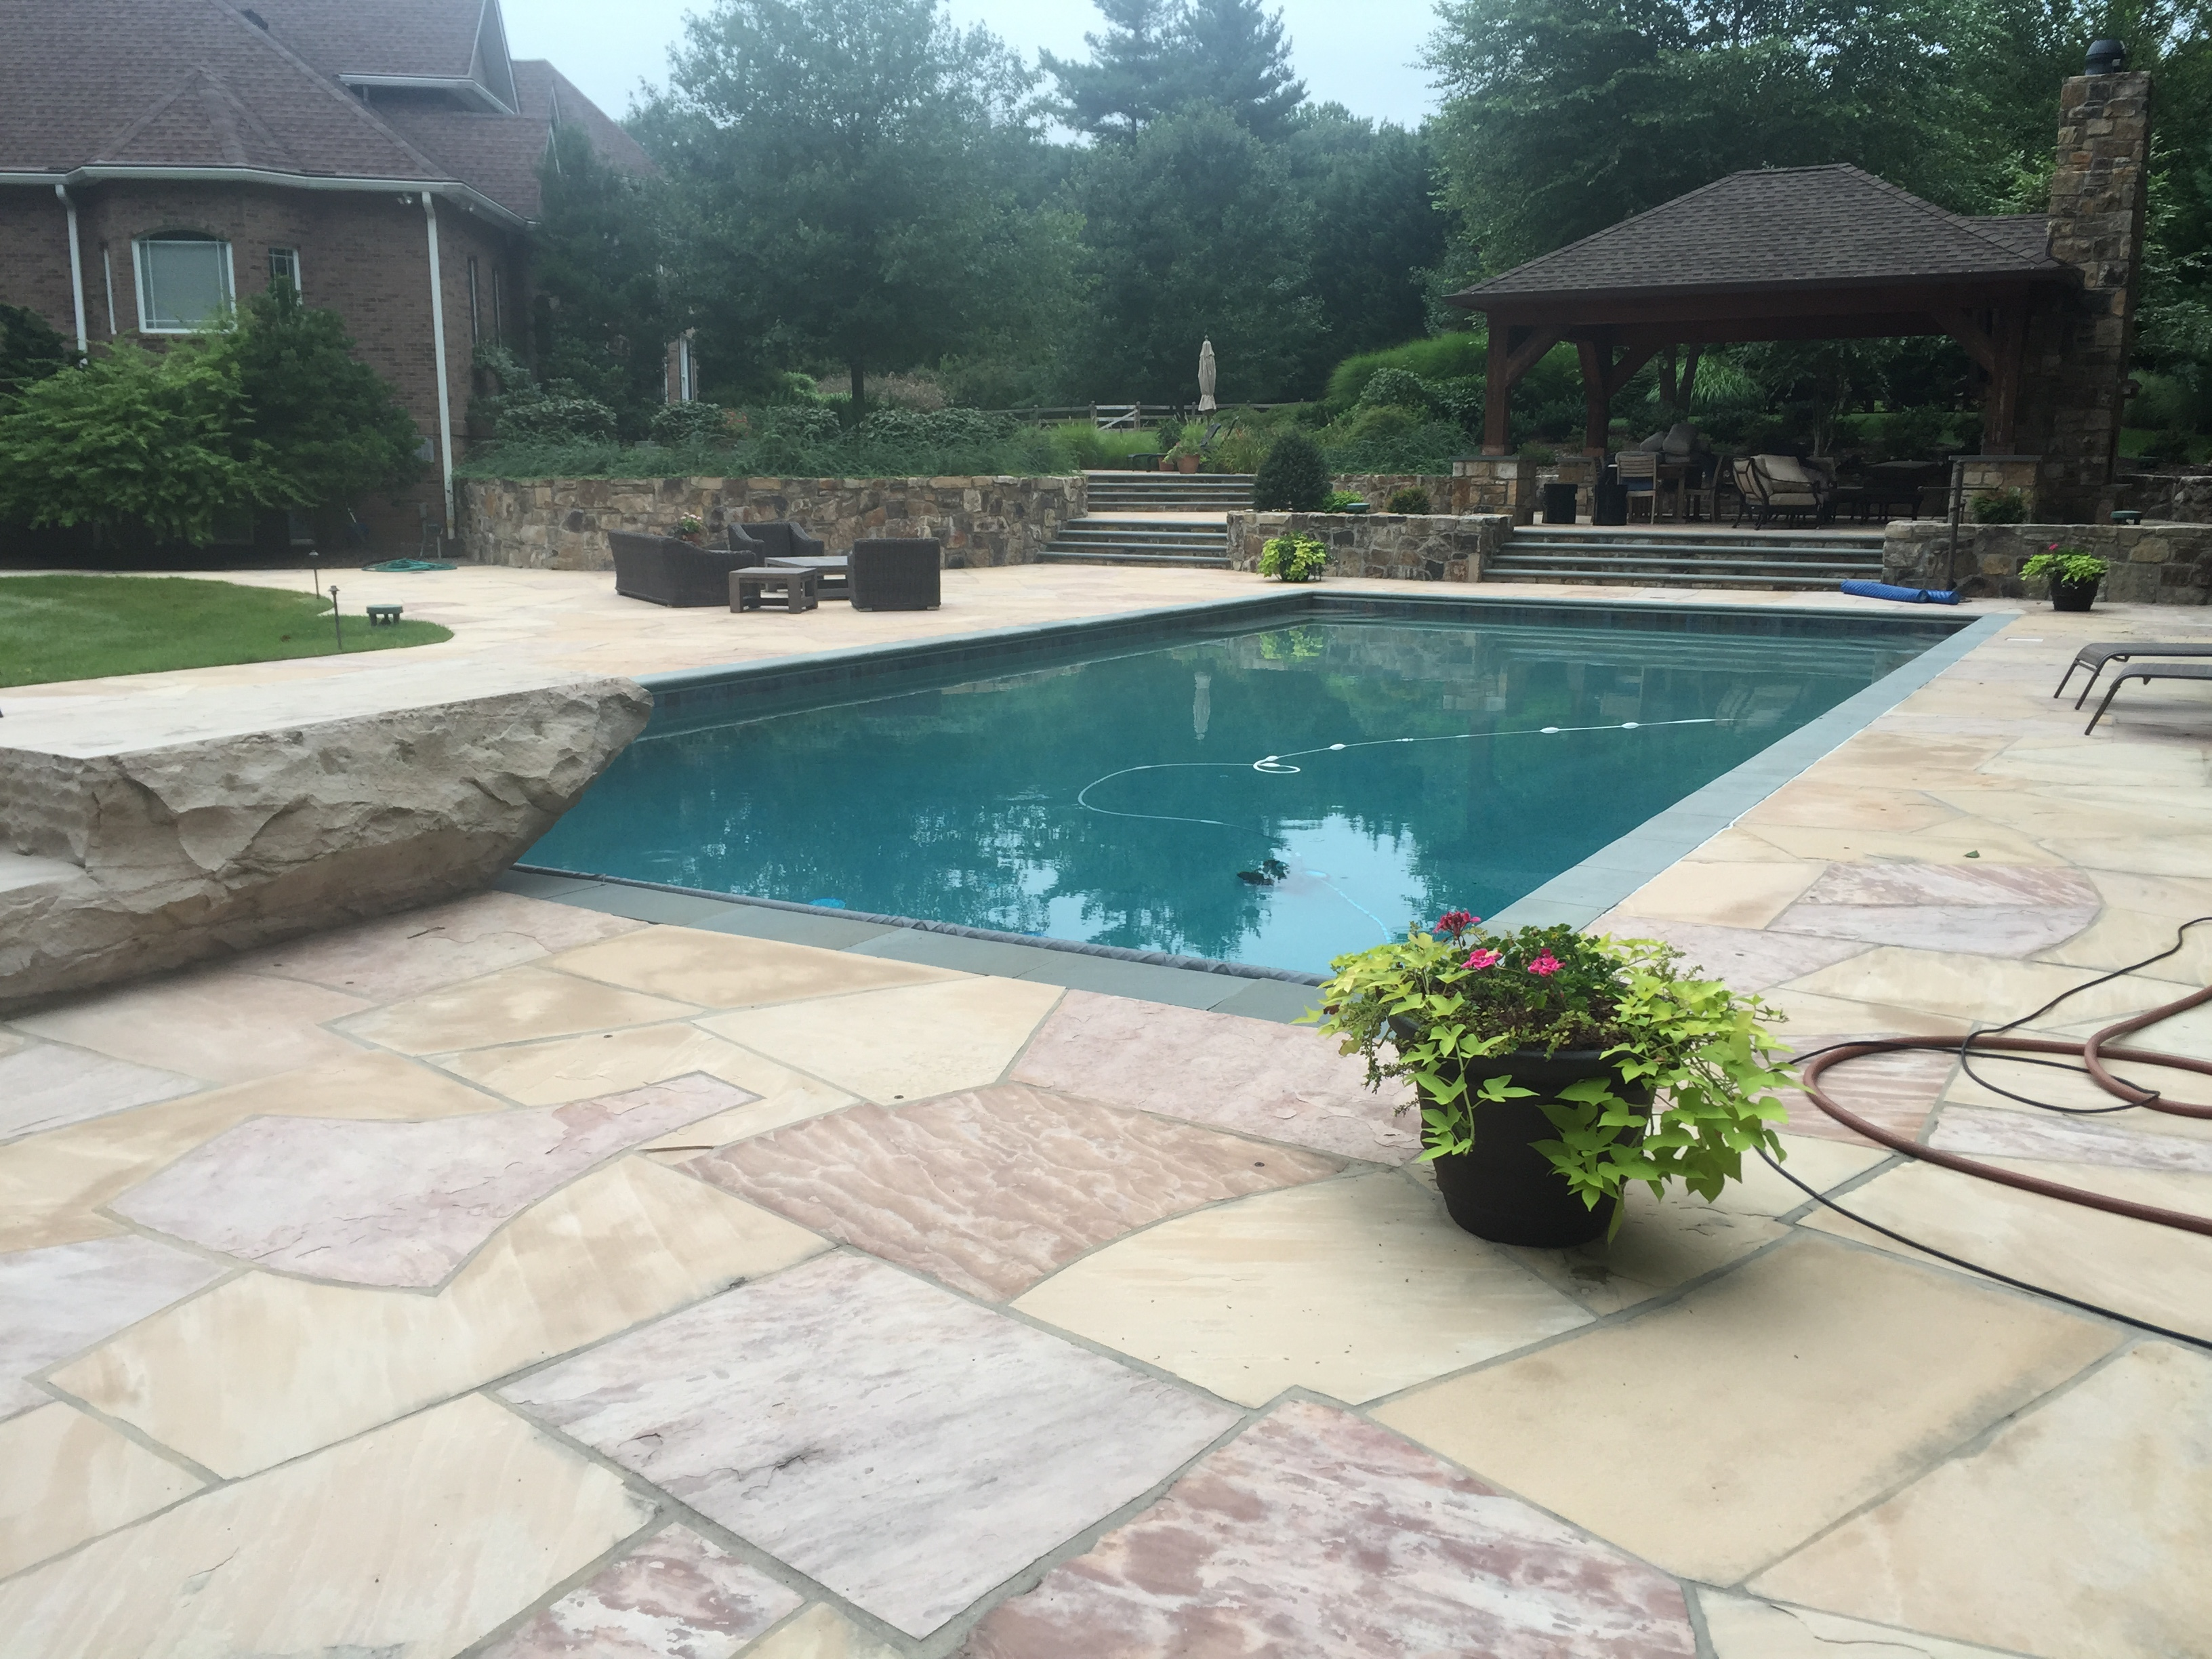 2016 pool design trends to inspire your new howard county pool for Pool design trends 2016